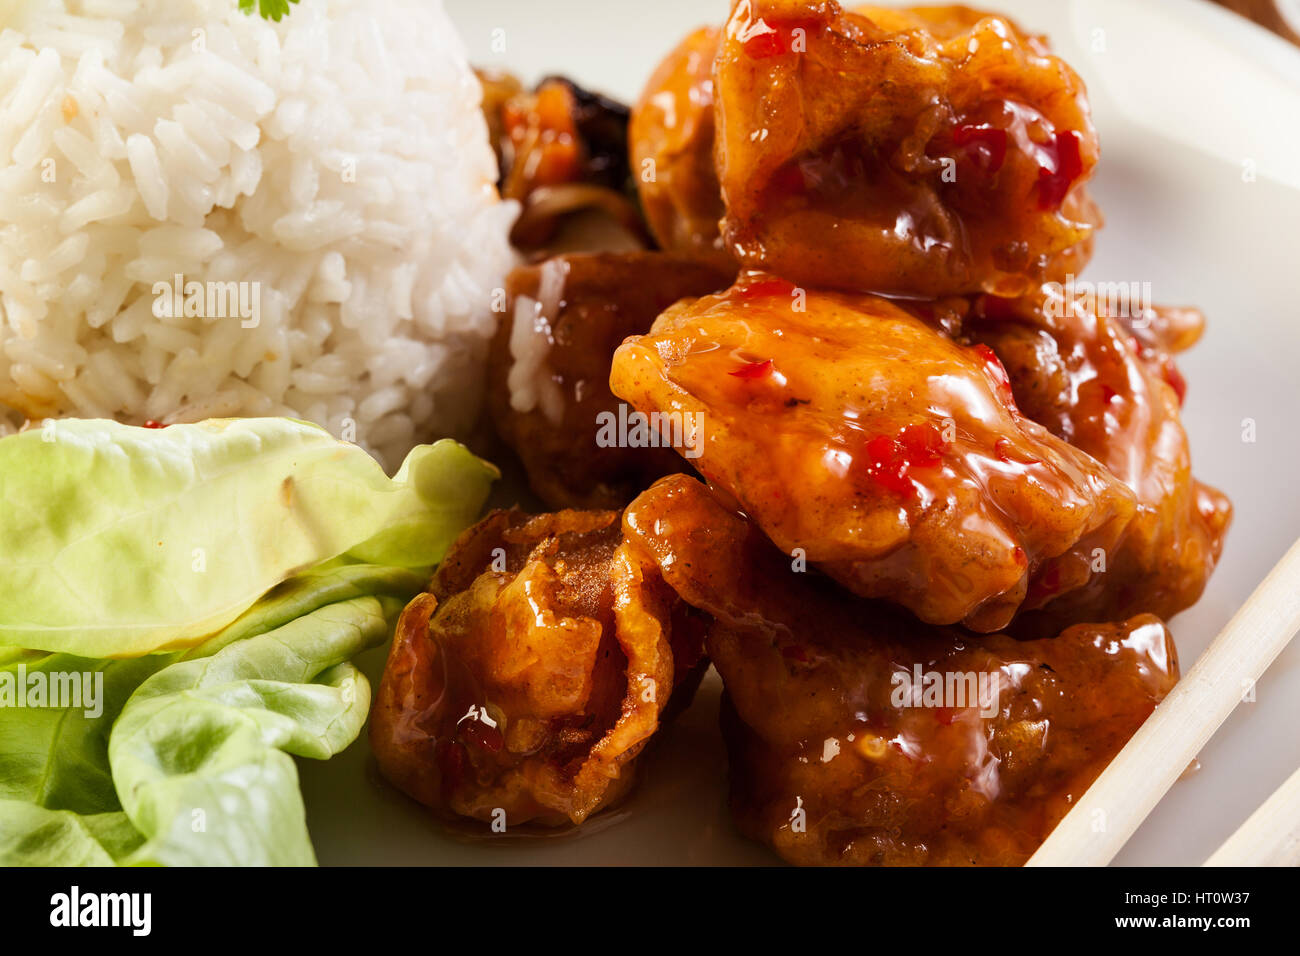 Fried chicken pieces in batter with sweet and sour sauce - Stock Image